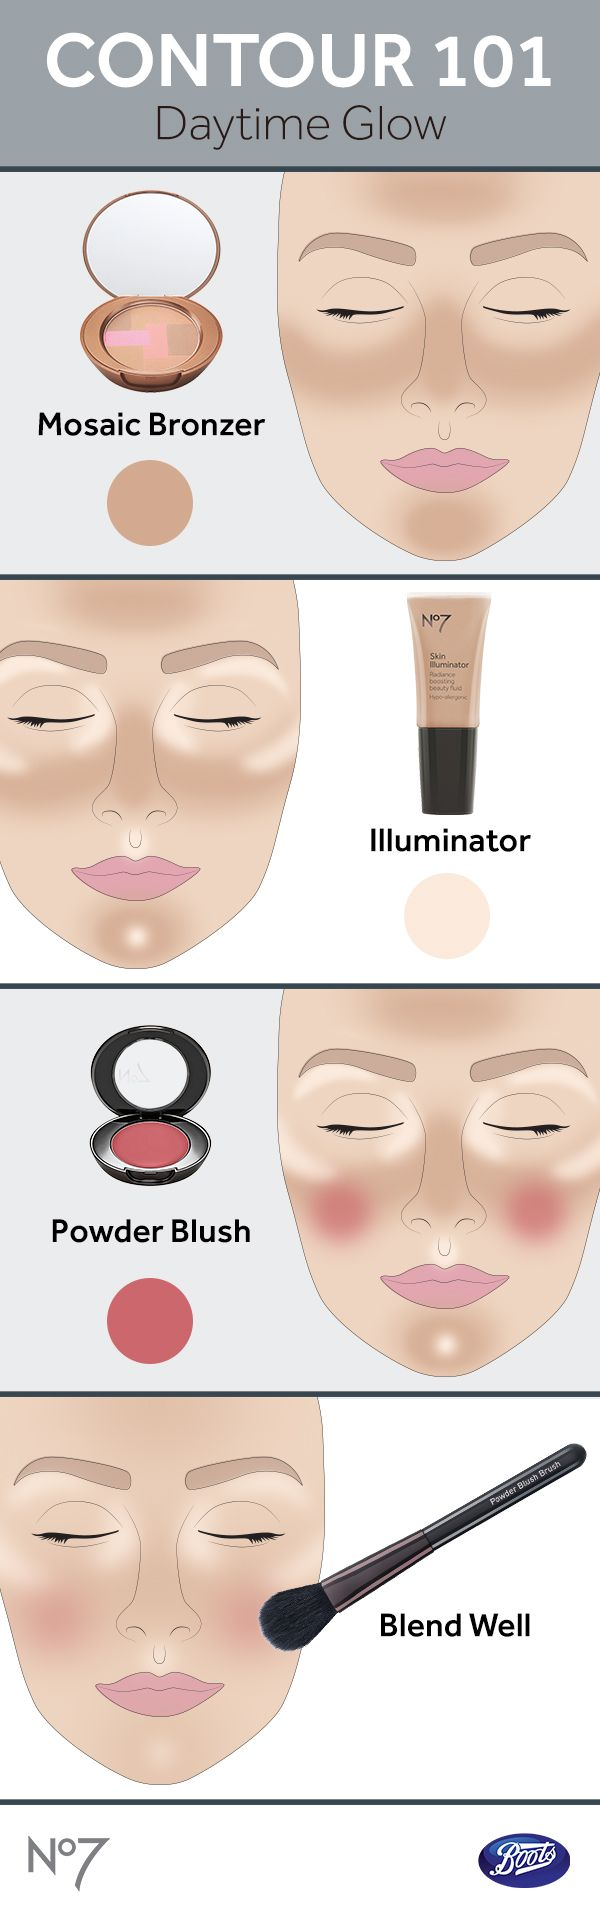 Follow this tutorial to get a bronzed, illuminating, well-blended daytime glow.